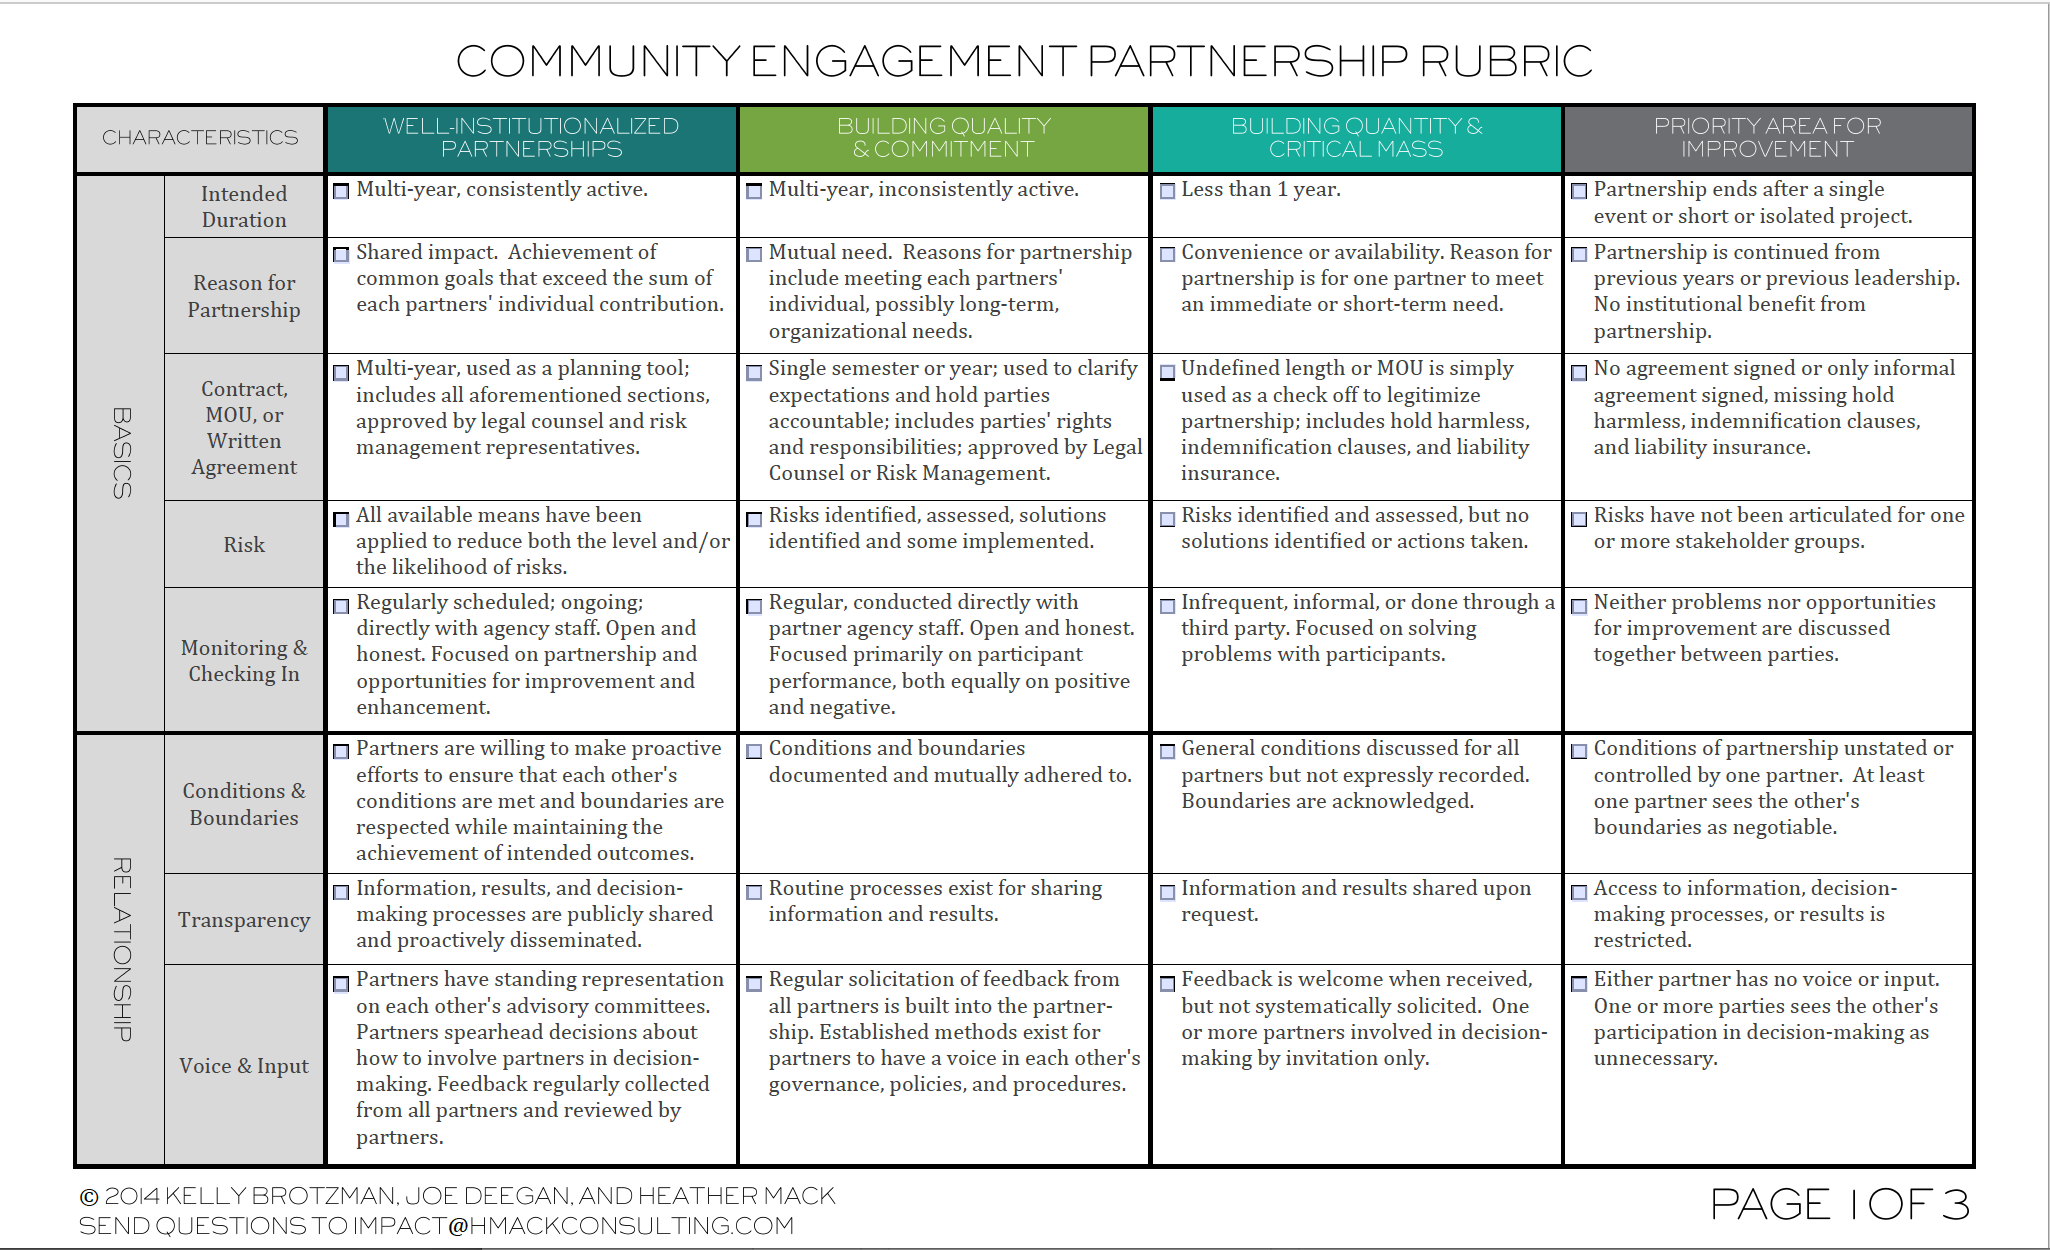 Community Partnership Rubric